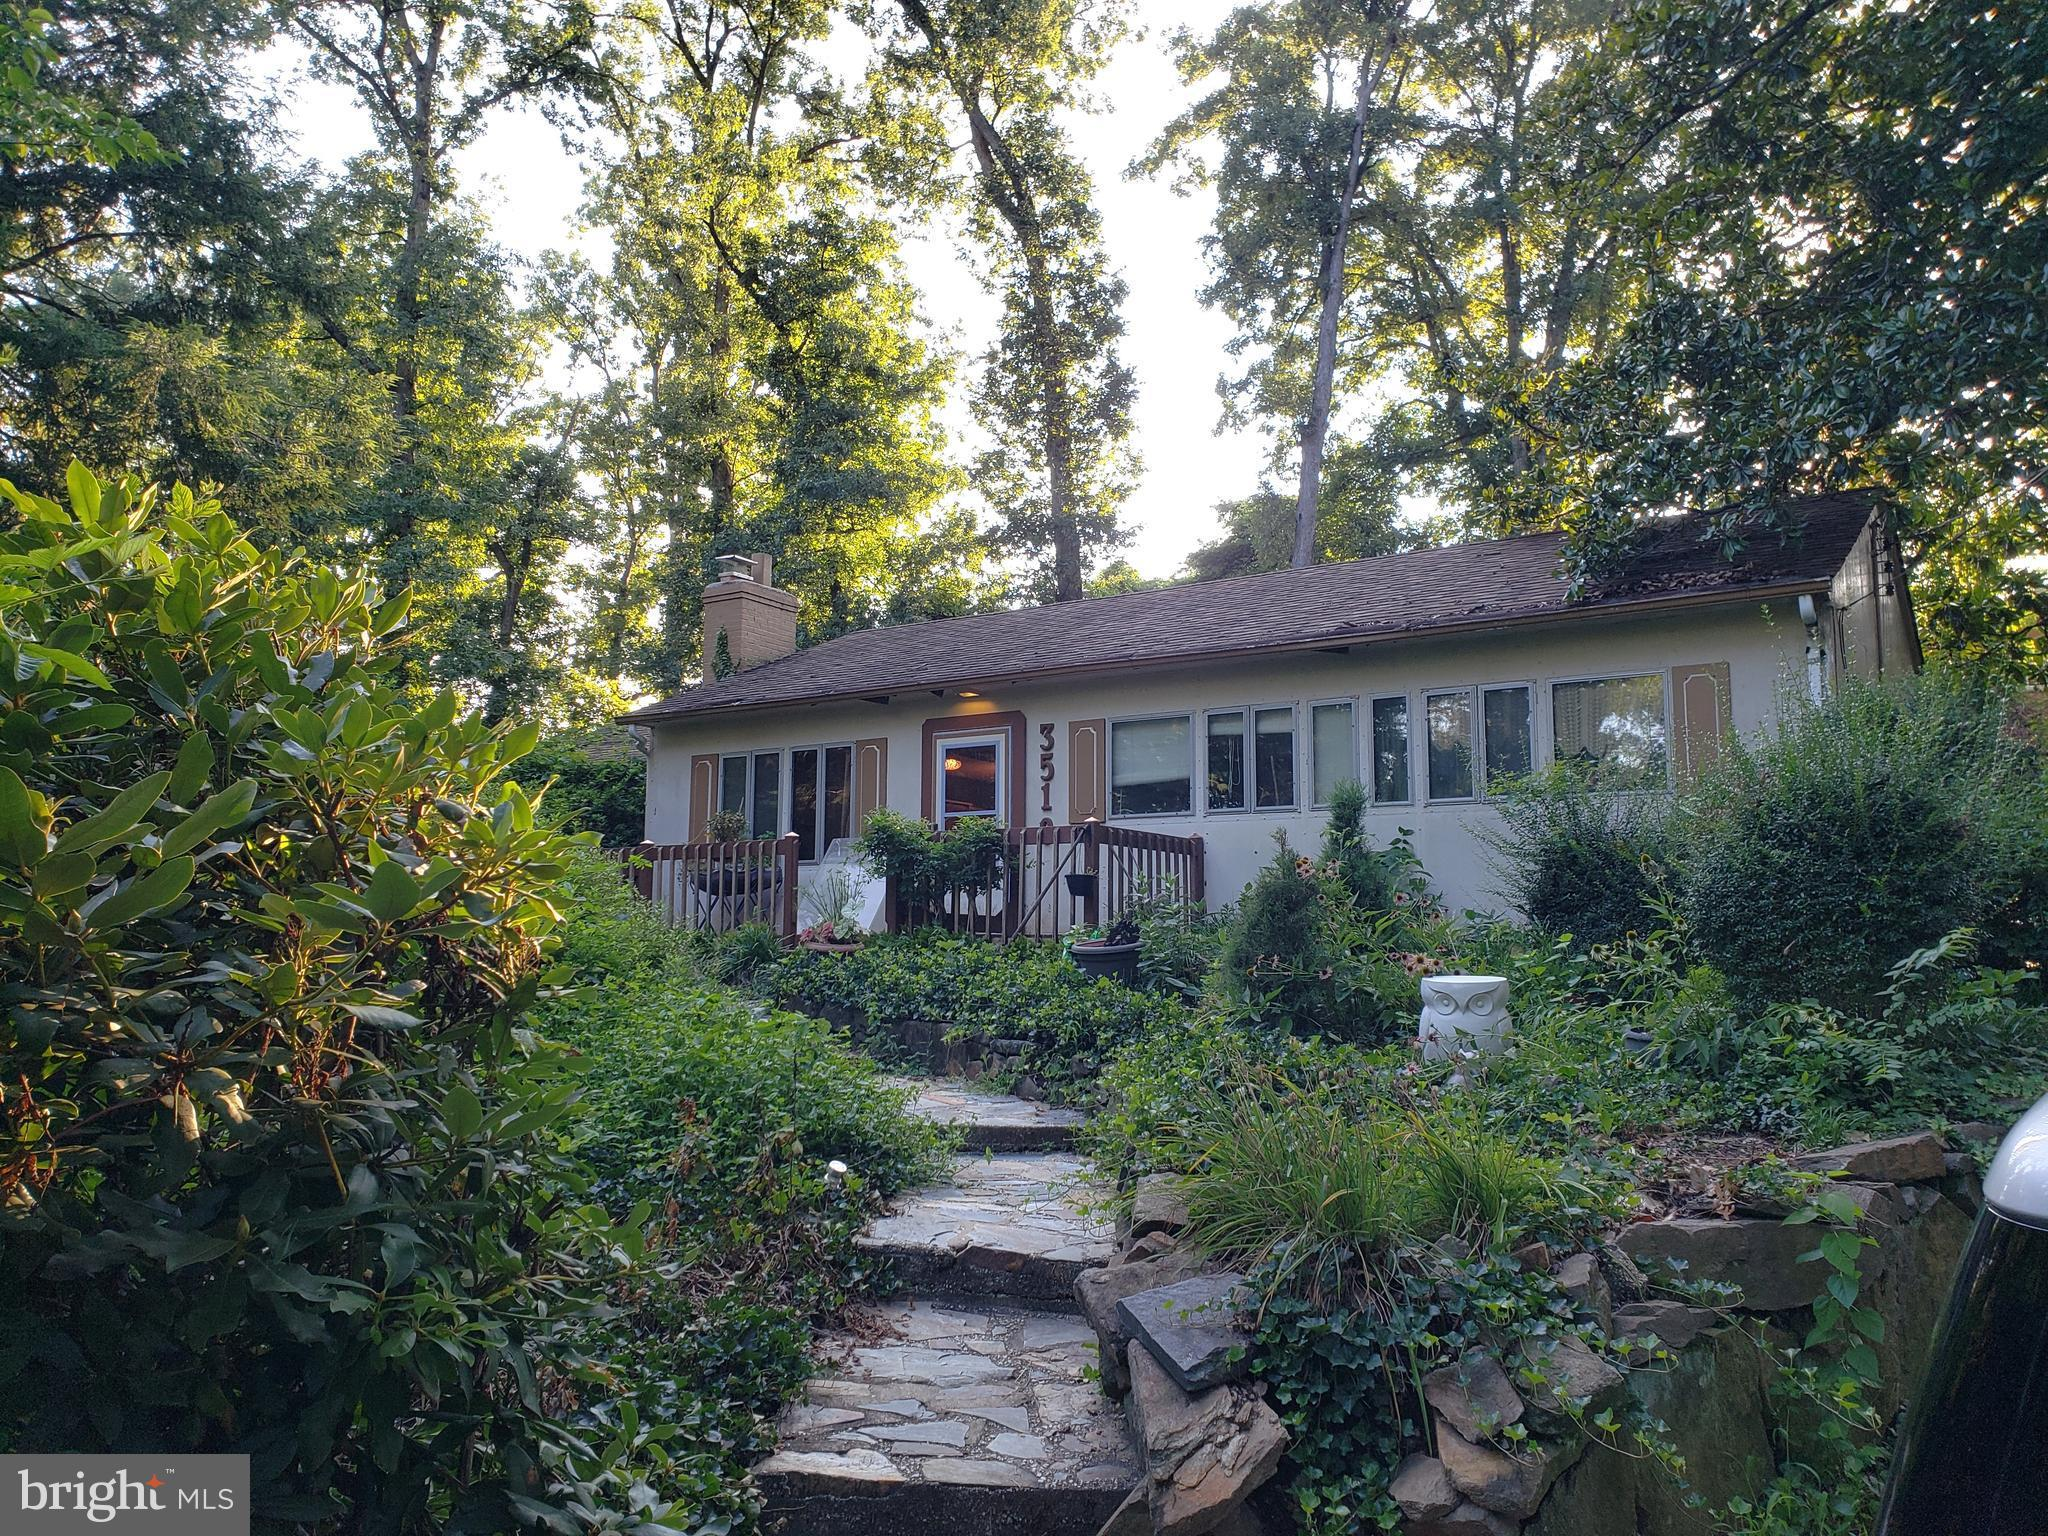 Location Location Location!!! GREAT INVESTOR DEAL! House is a Fixer Upper / Tear Down. About $100K in equity in this move-in condition, property in sort after area, Cul-De-Sac neighborhood. Nested among $800K homes. Comps in $600K range. Family room w/Fire place . Easy commute to DC. Property being sold completely *As-Is, Where-Is* Listing shown by appointment only.